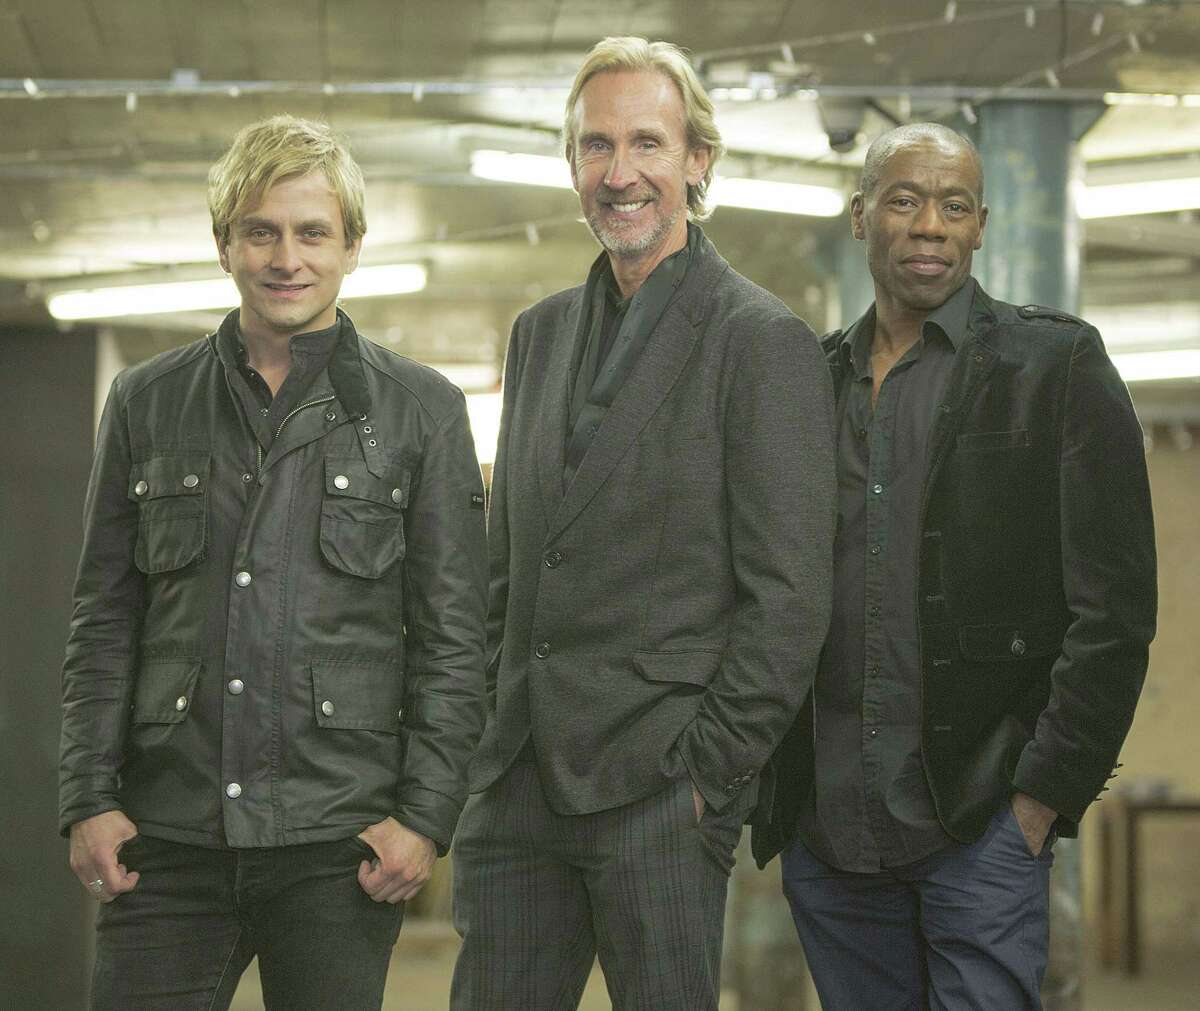 Contributed photo Genesis guitarist Mike Rutherford is set to bring his solo band, Mike & The Mechanics to Infinity Music Hall in Hartford, Sunday March 8. Itís more than a rare treat when Mike Rutherford brings ìMike and The Mechanicsî to America. For tickets or more information on this upcoming show, call the box office at 866-666-6306 or visit www.infinityhall.com.